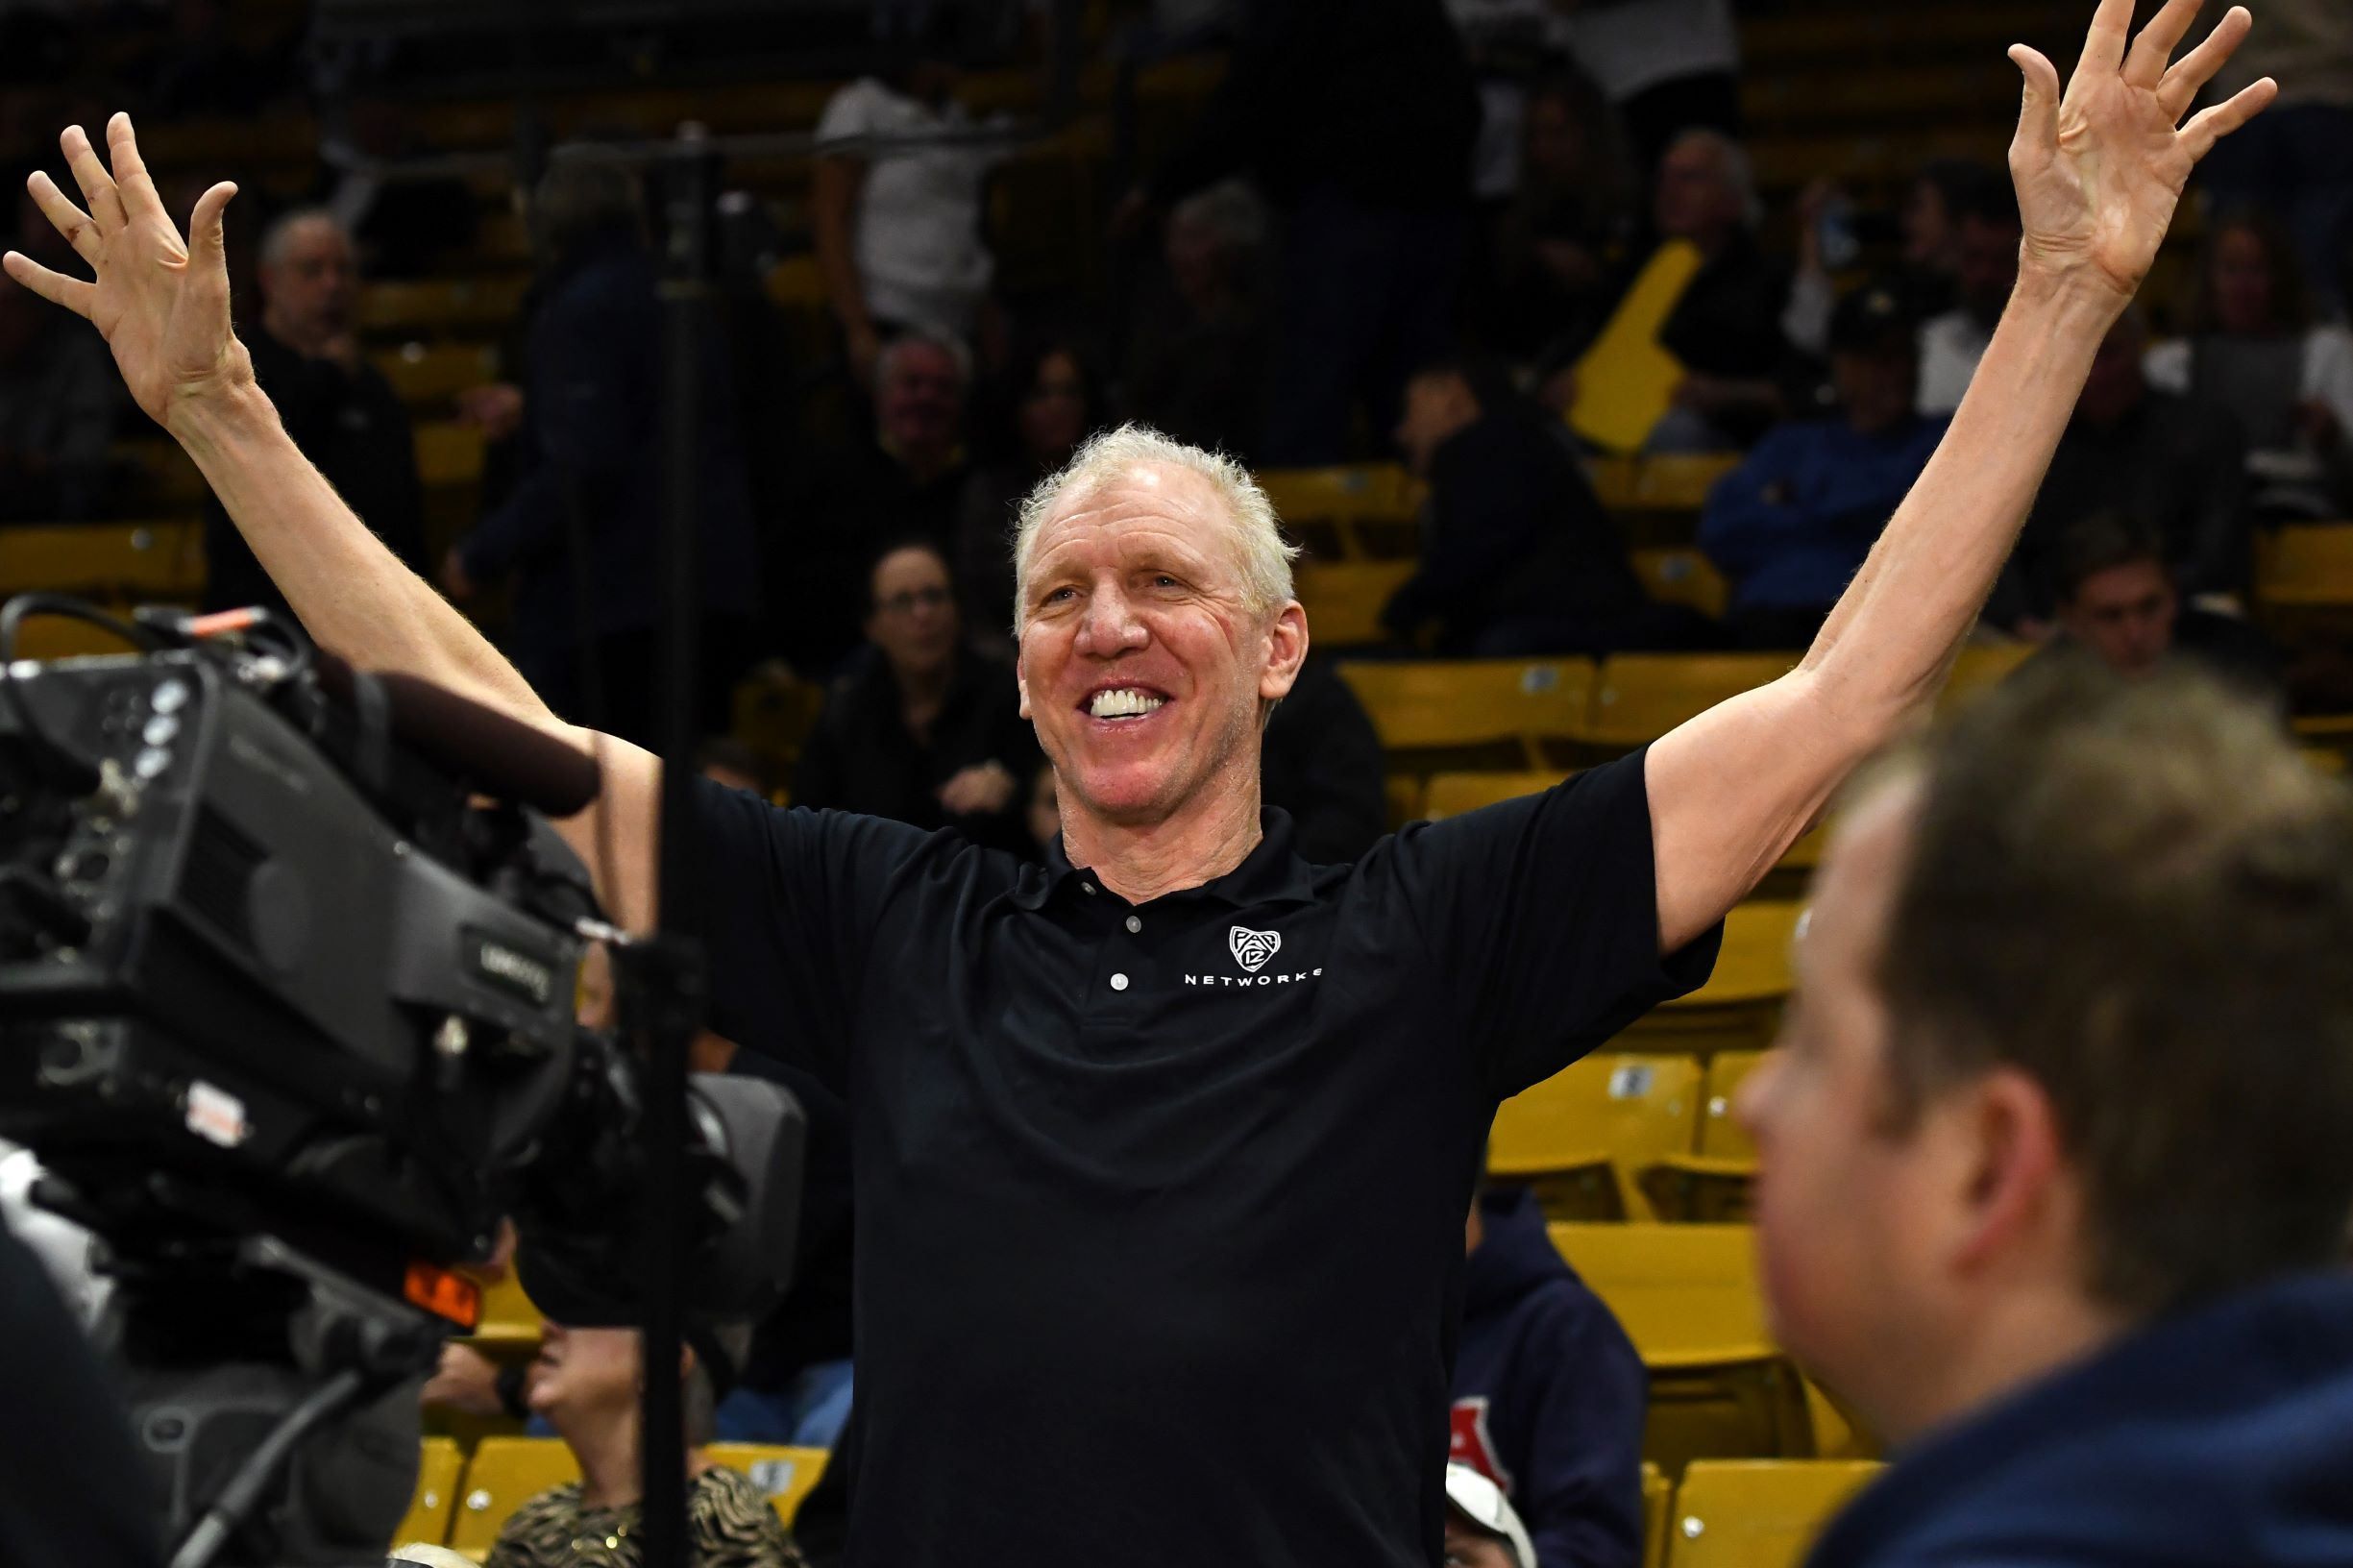 Guys who cracked code in Boston sports: Bill Walton